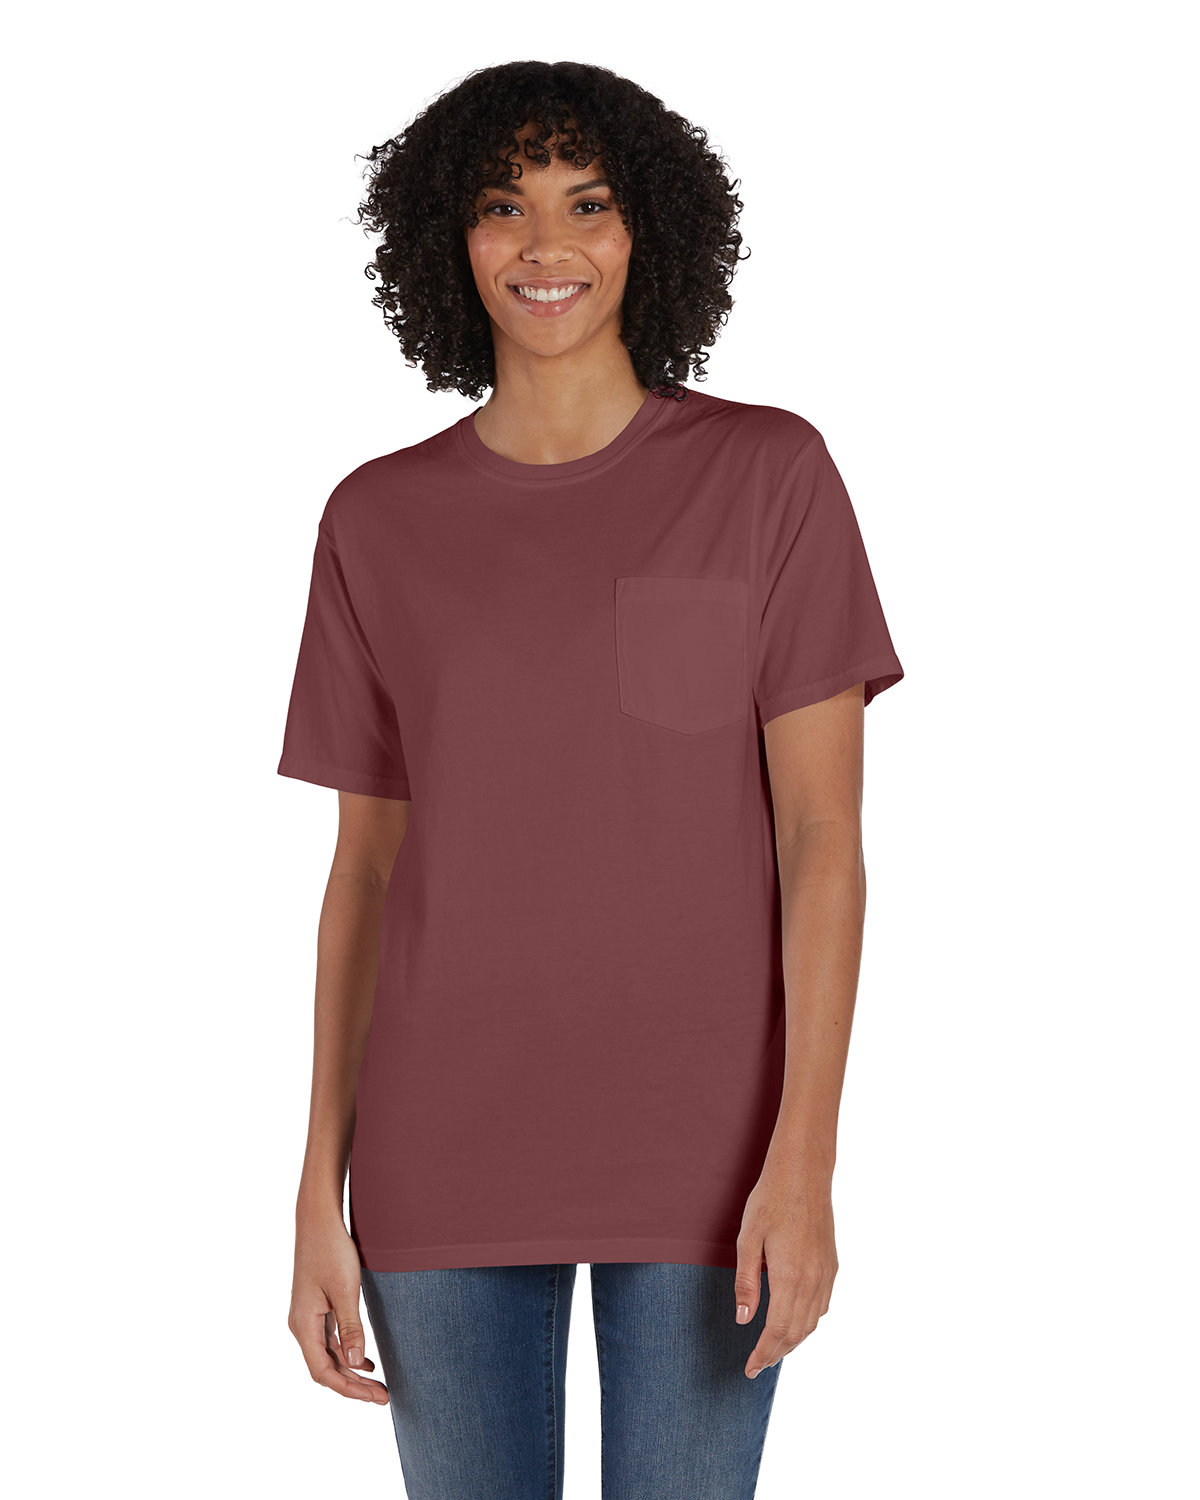 ComfortWash by Hanes Unisex 5.5 oz., 100% Ringspun Cotton Garment-Dyed T-Shirt with Pocket CAYENNE